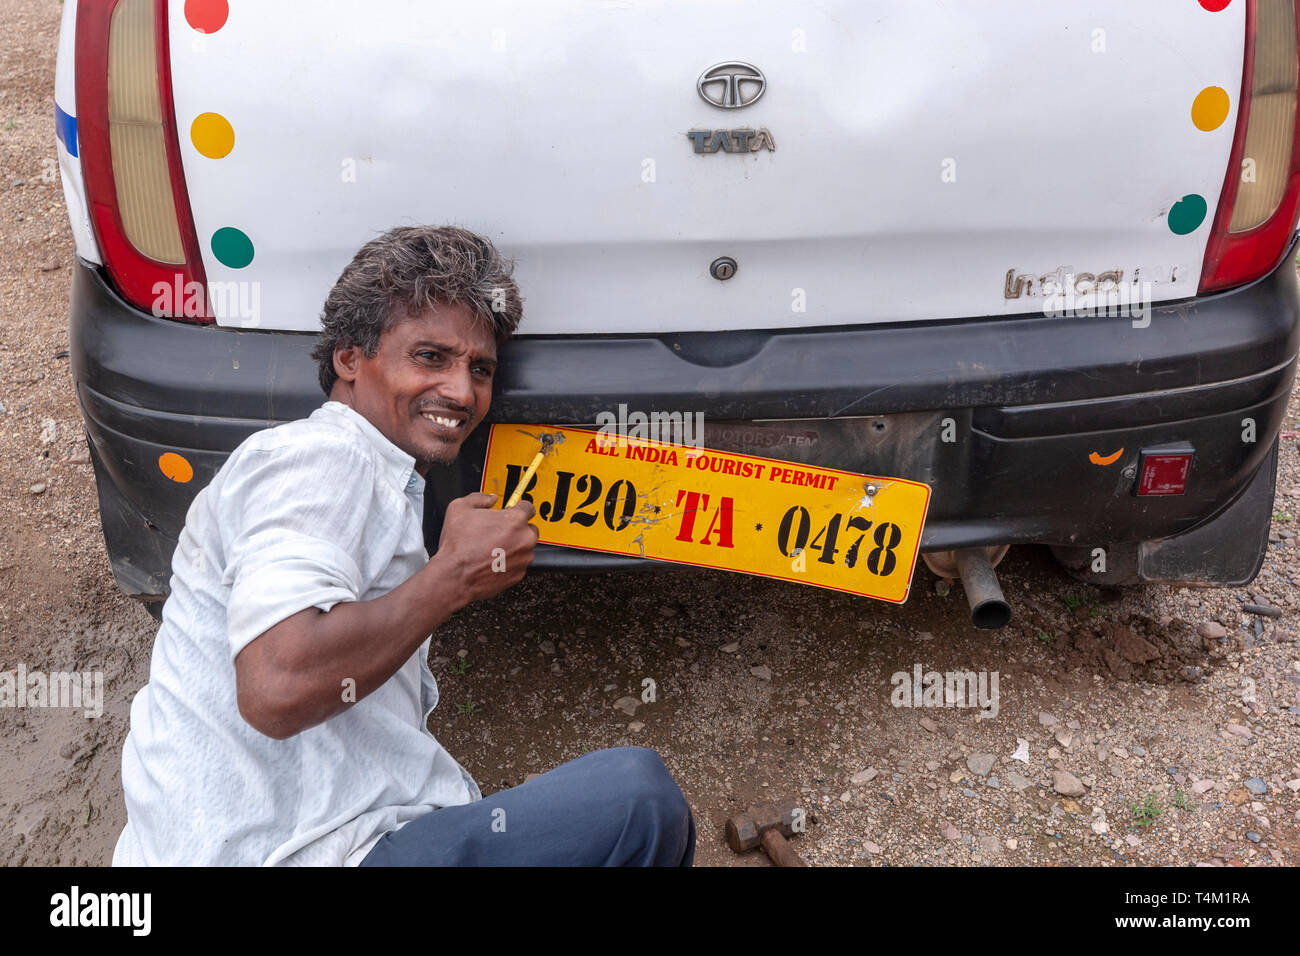 Man changing the car registration plate in Rajasthan, India - Stock Image